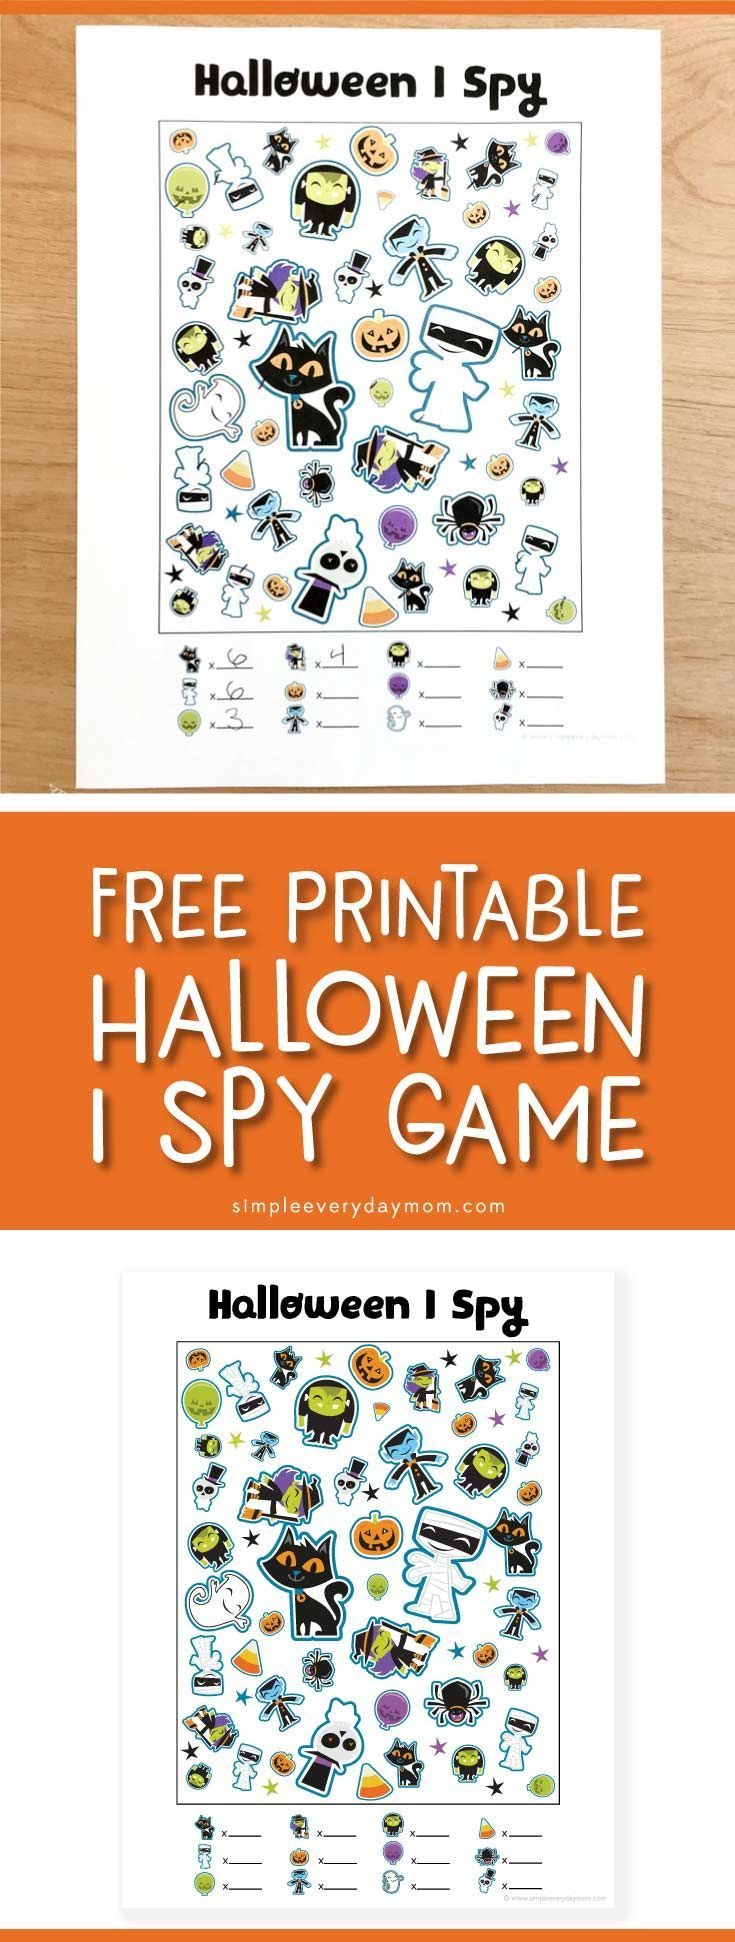 free printable halloween i spy game | printable activities for kids